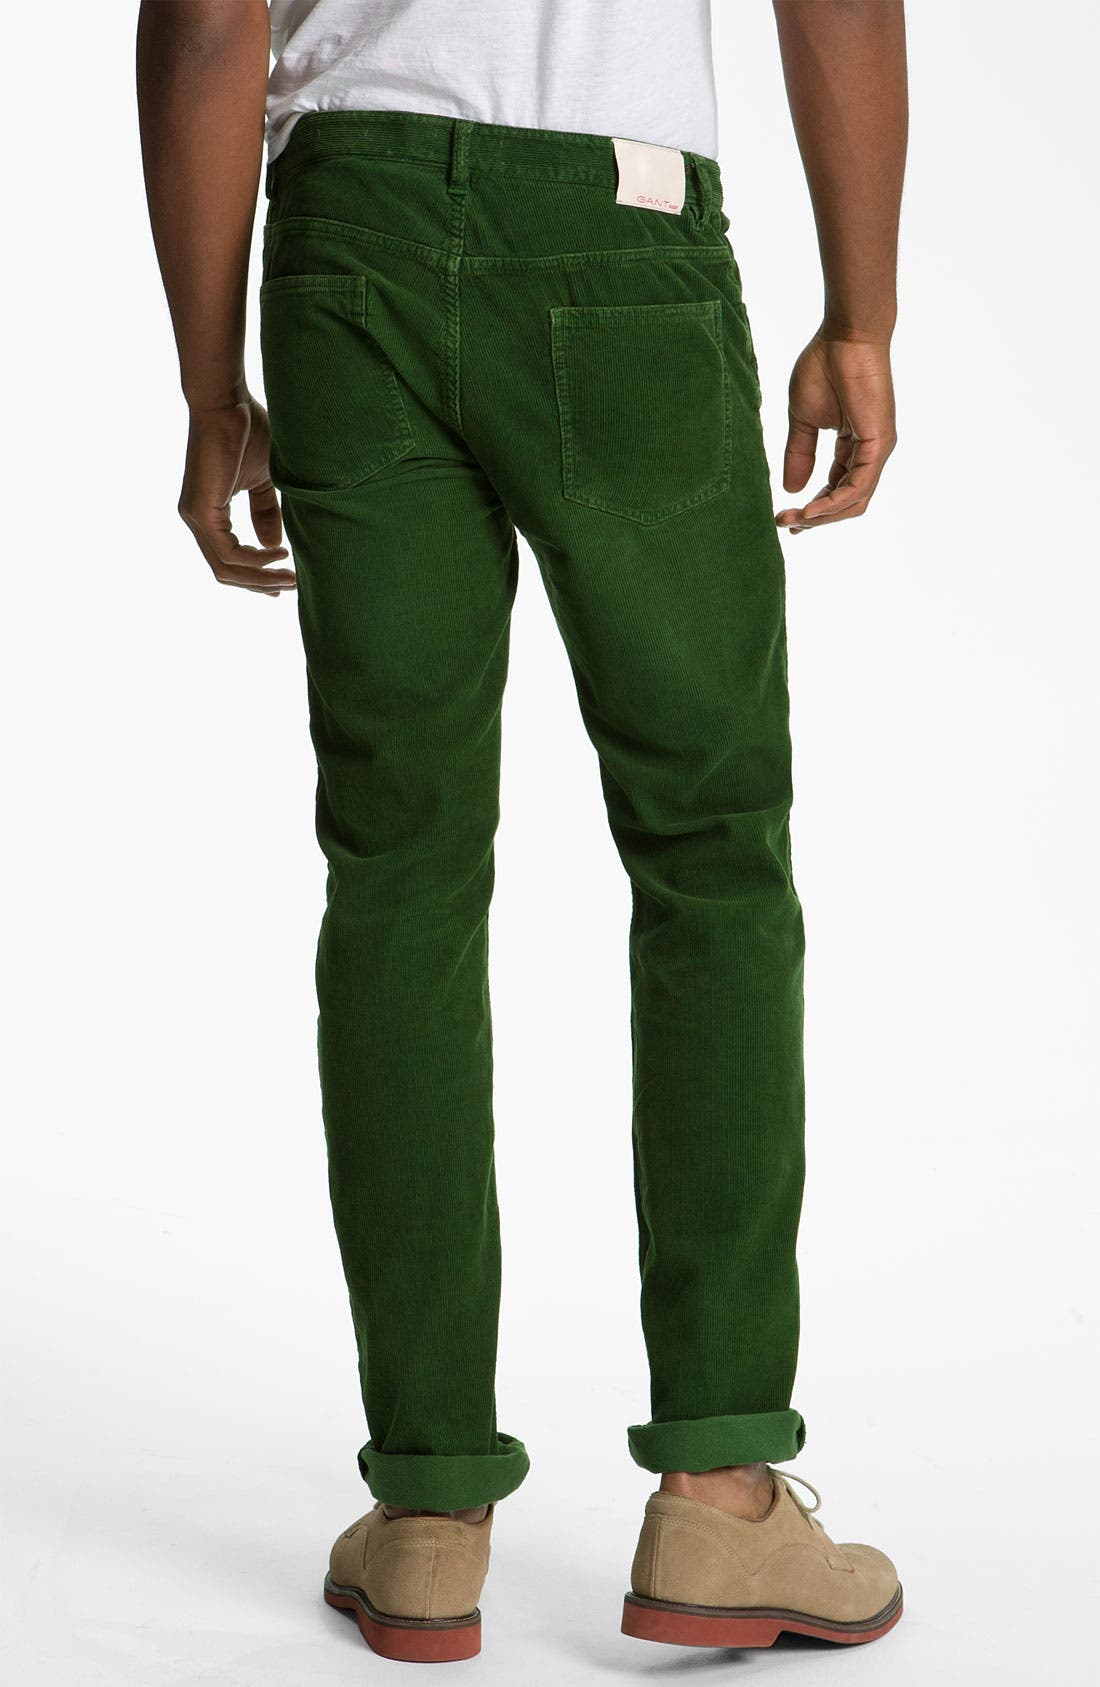 Alternate Image 1 Selected - Gant Rugger 'The Cordster' Slim Fit Corduroy Pants